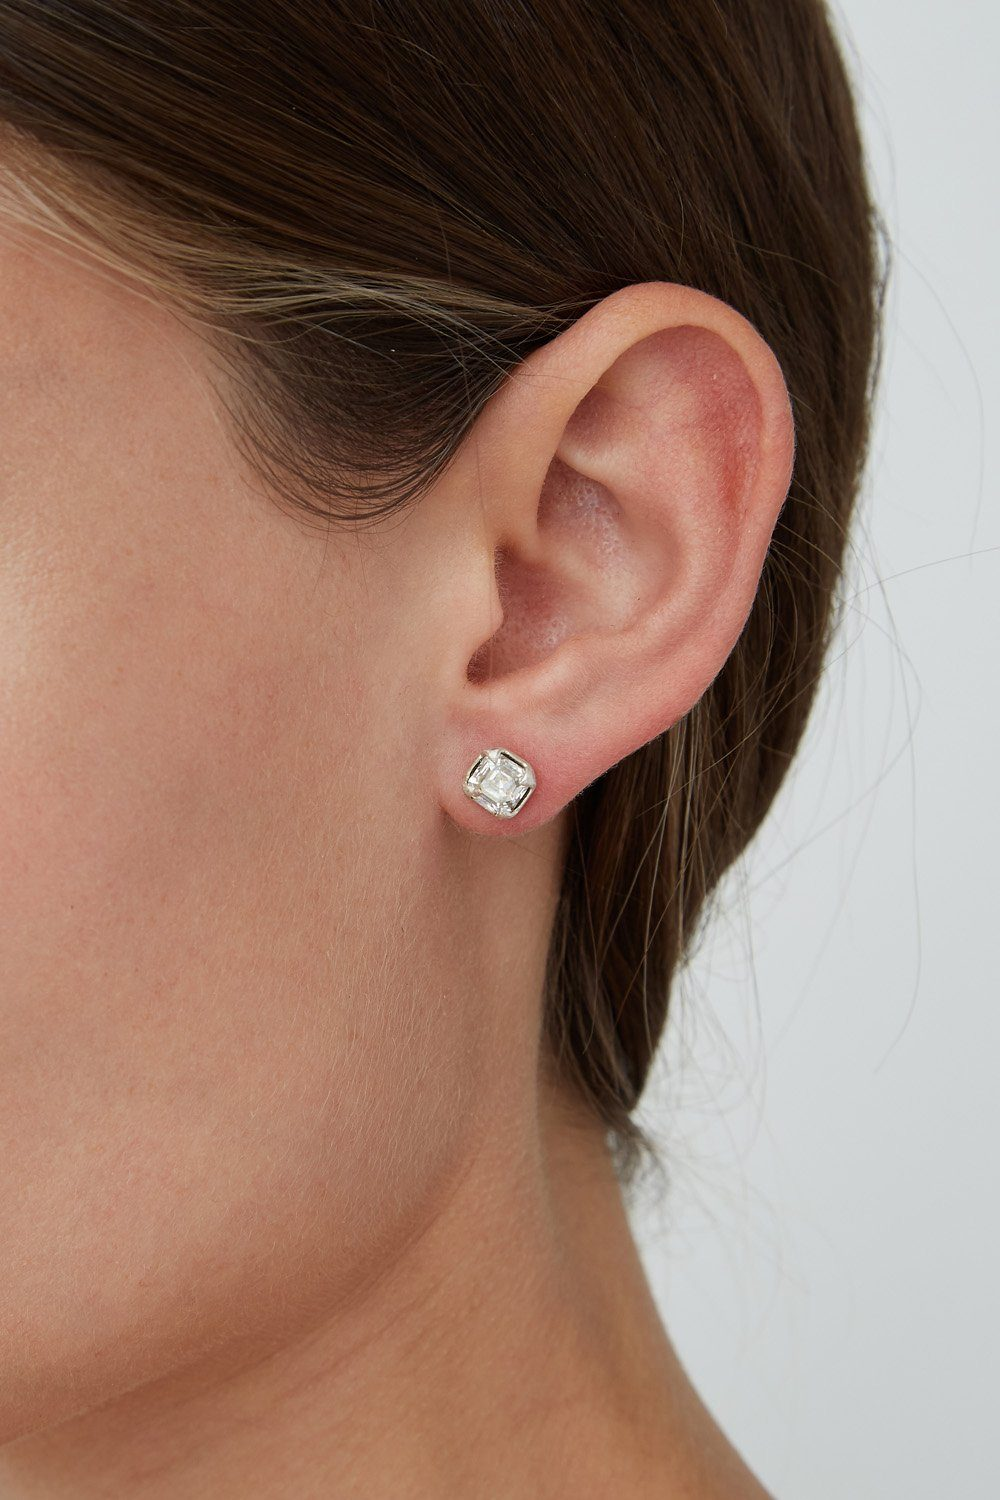 Silver Shade Crystal Petite Stud Earrings